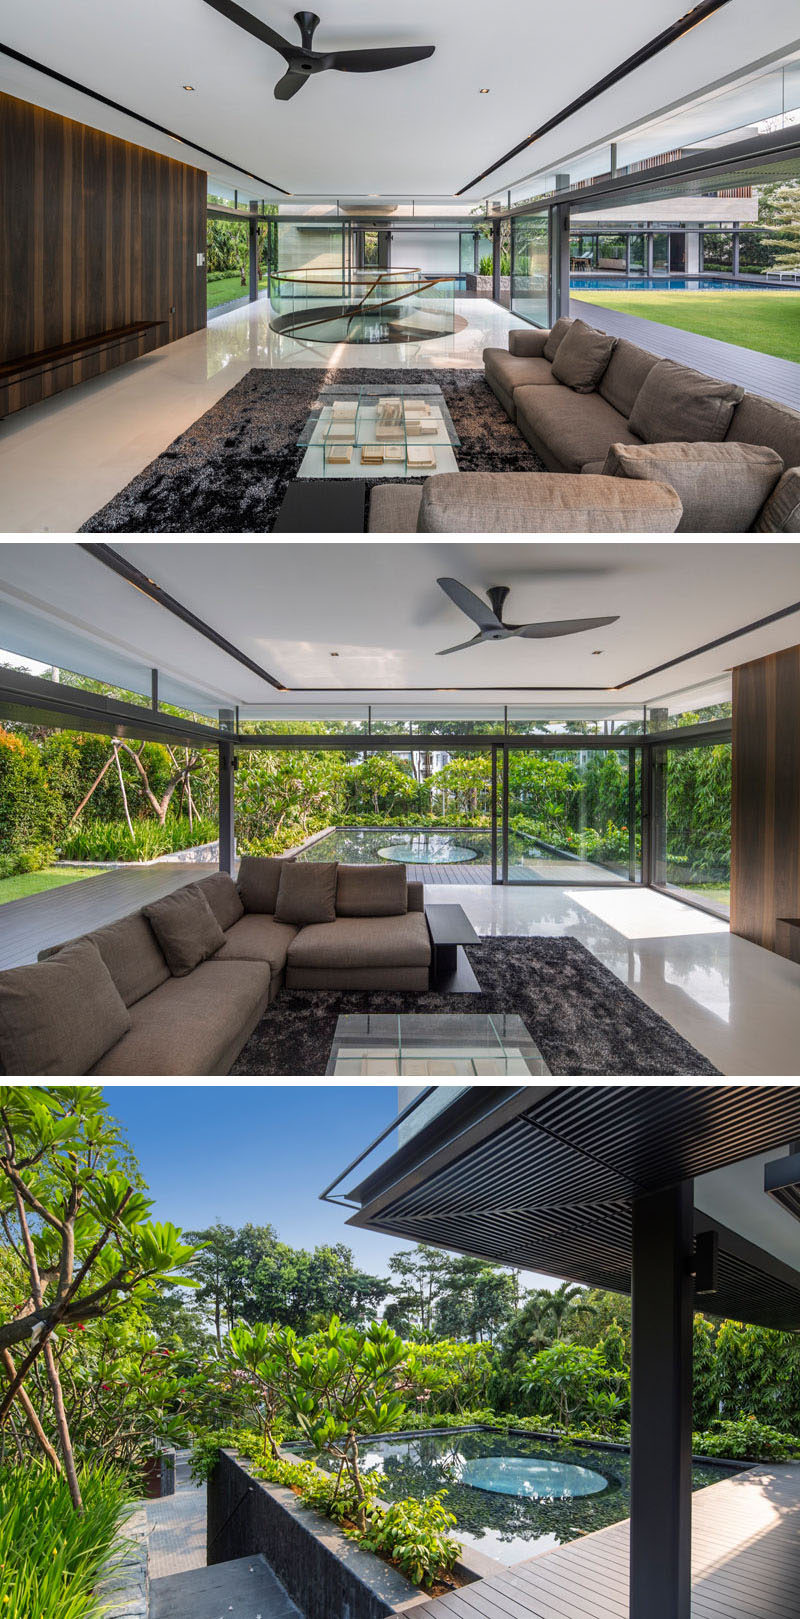 This living area opens up to the garden and a water feature.